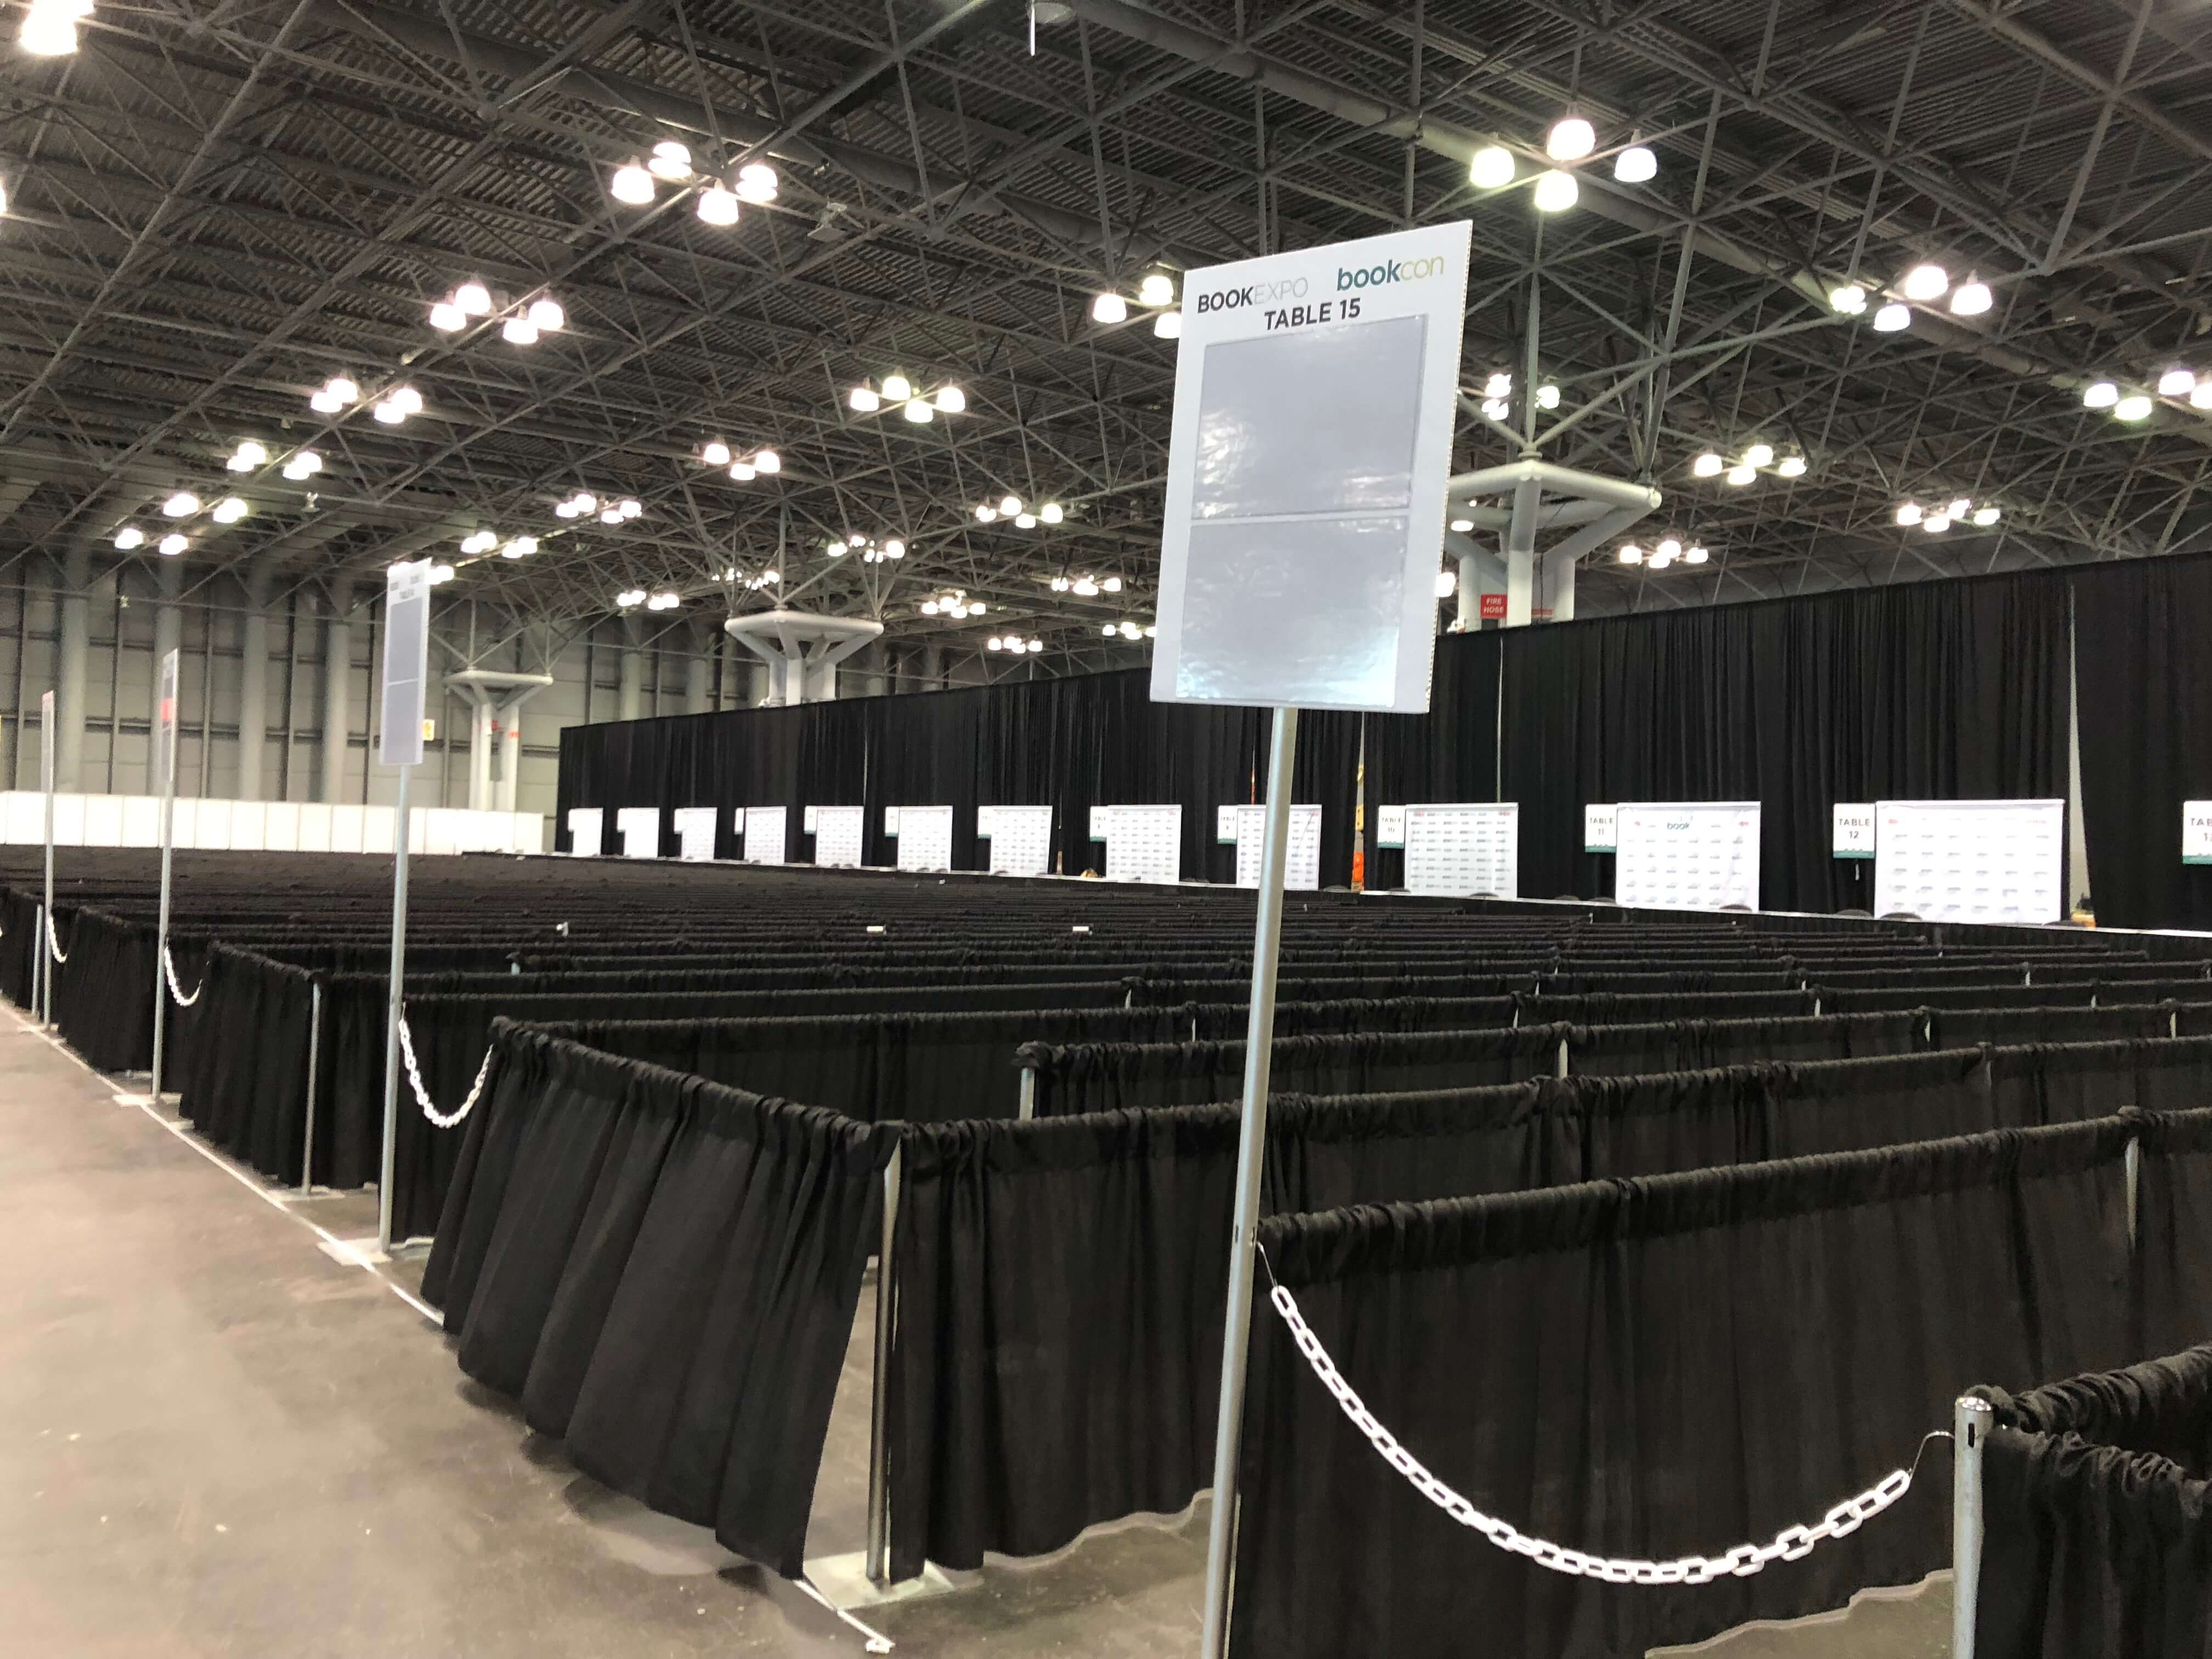 BookExpo18 before the start